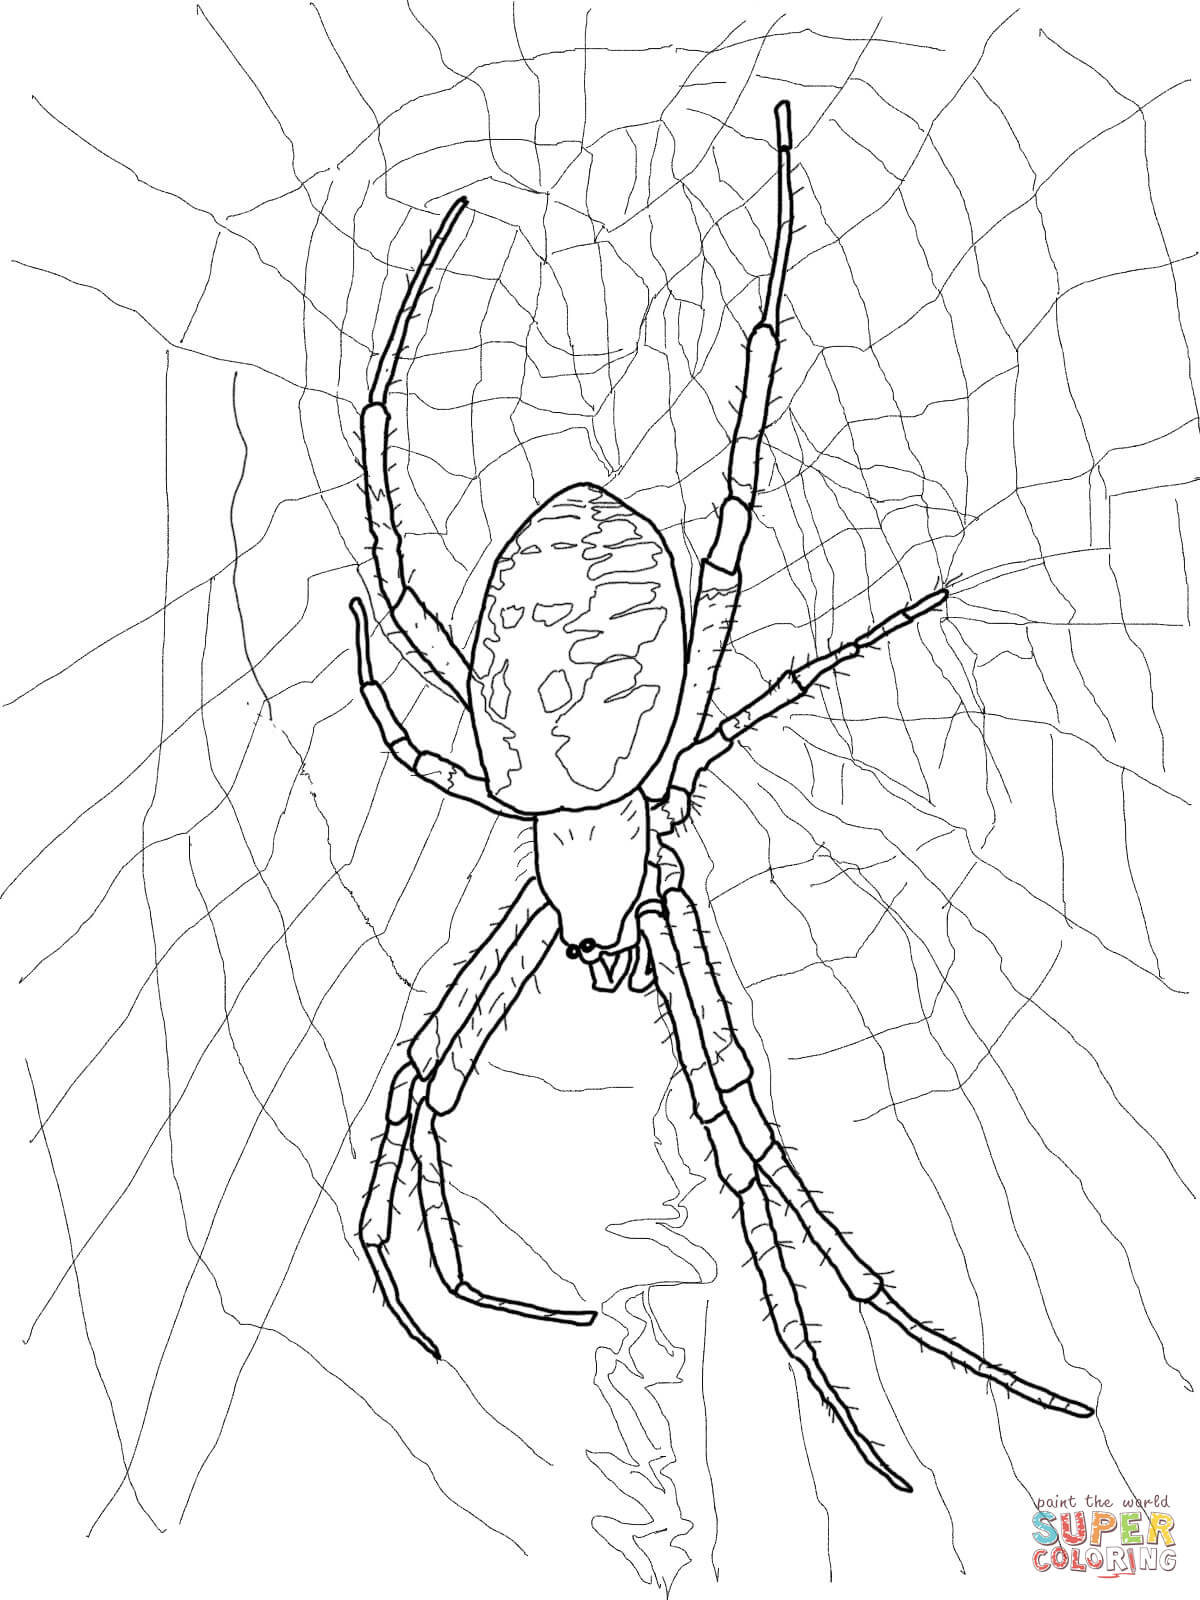 creepy spiders coloring pages - photo#4